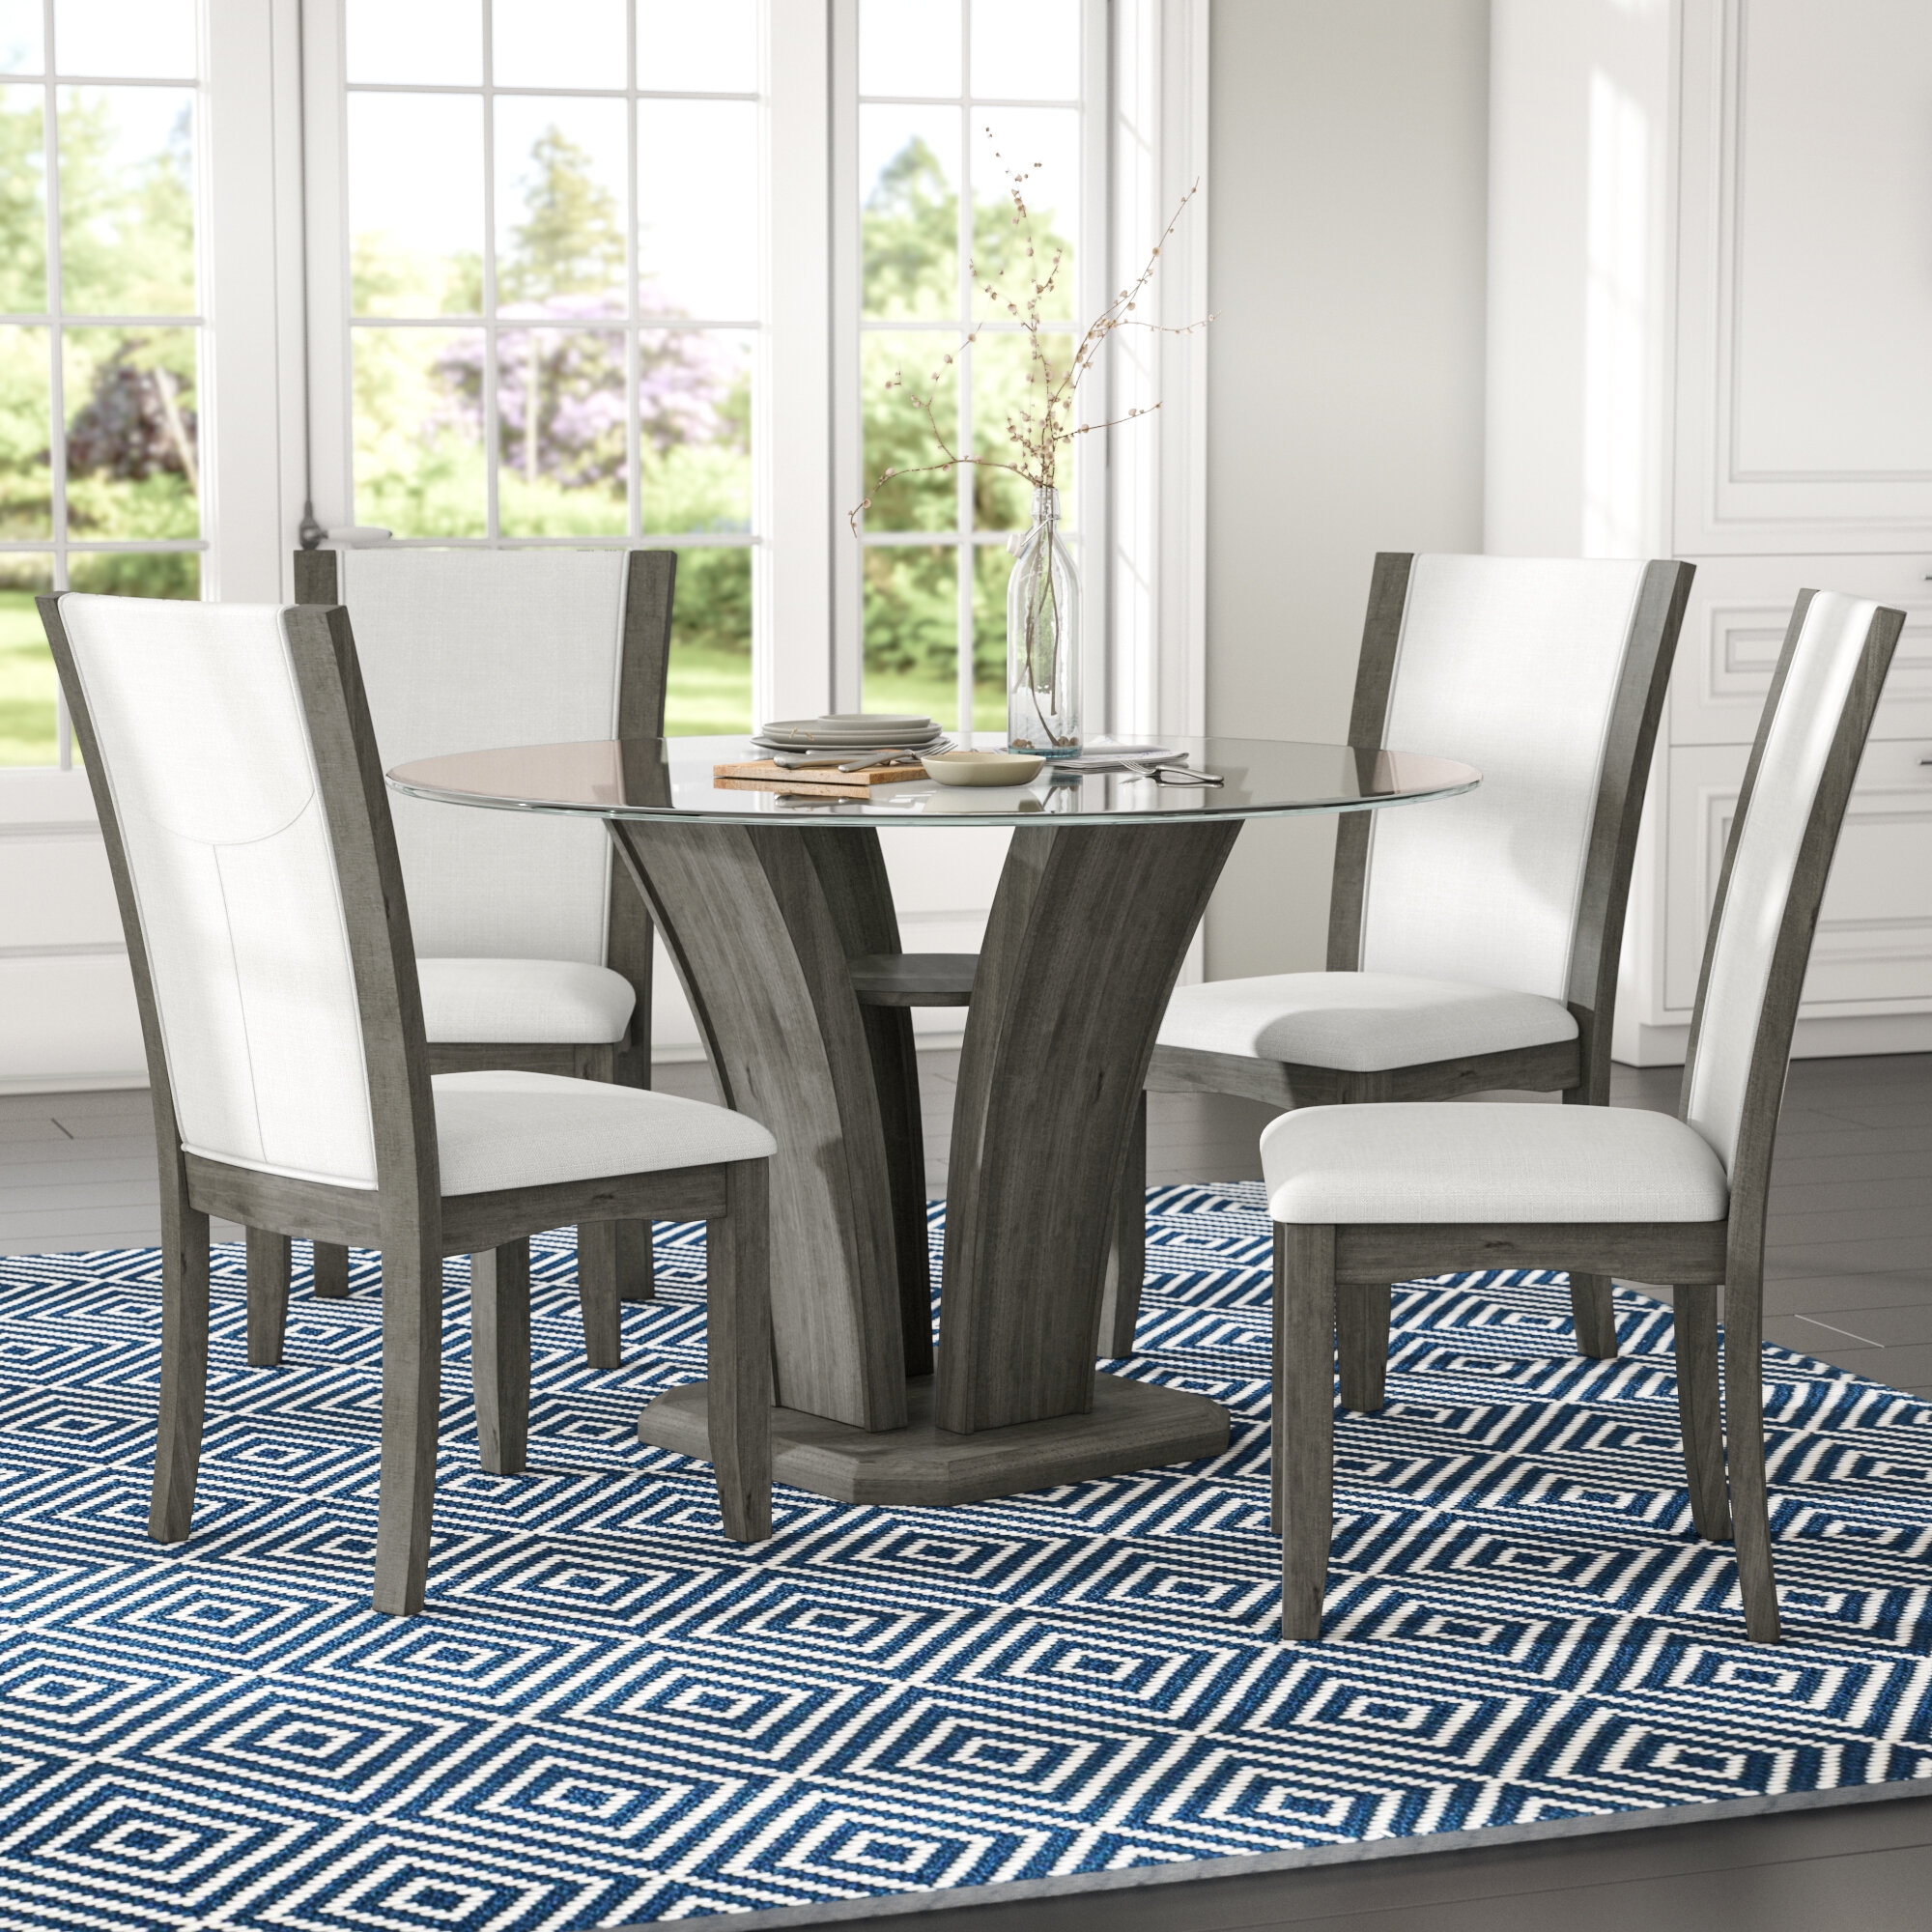 Brayden Studio Kangas 5 Piece Glass Top Dining Set U0026 Reviews | Wayfair